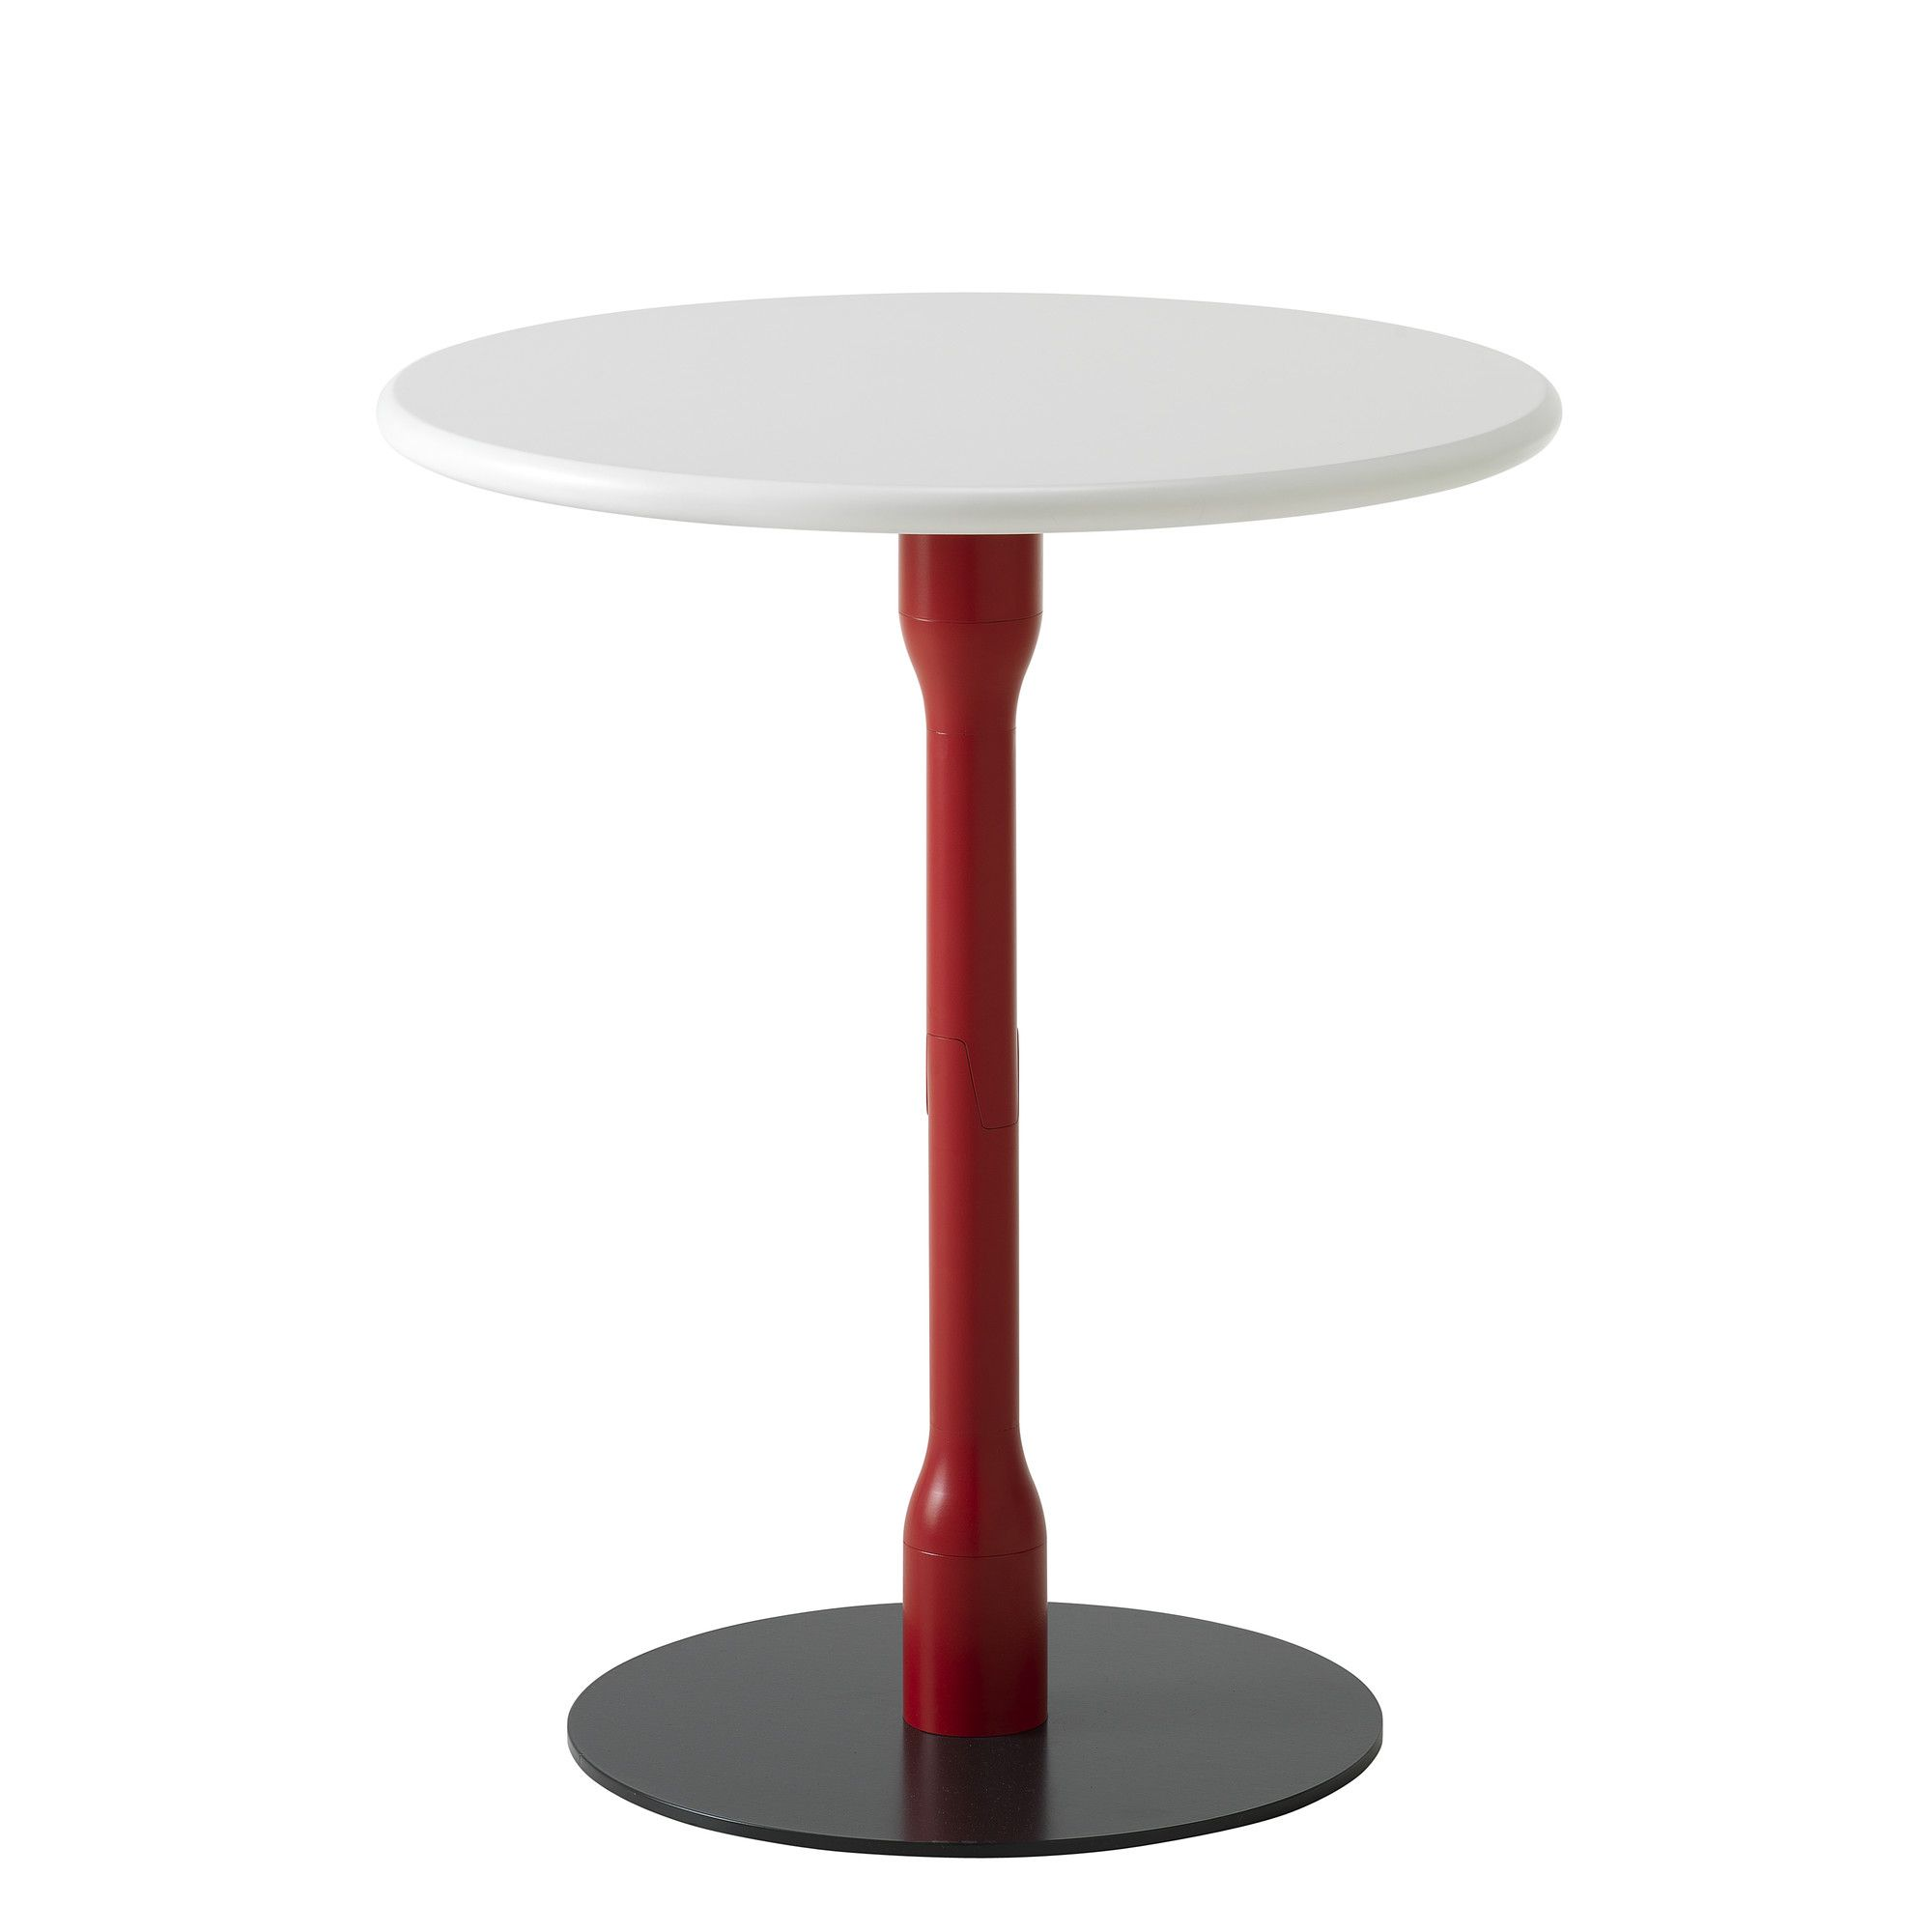 Casamania Bek Round Coffee Table - Painted Metal Black - White at Tesco Direct